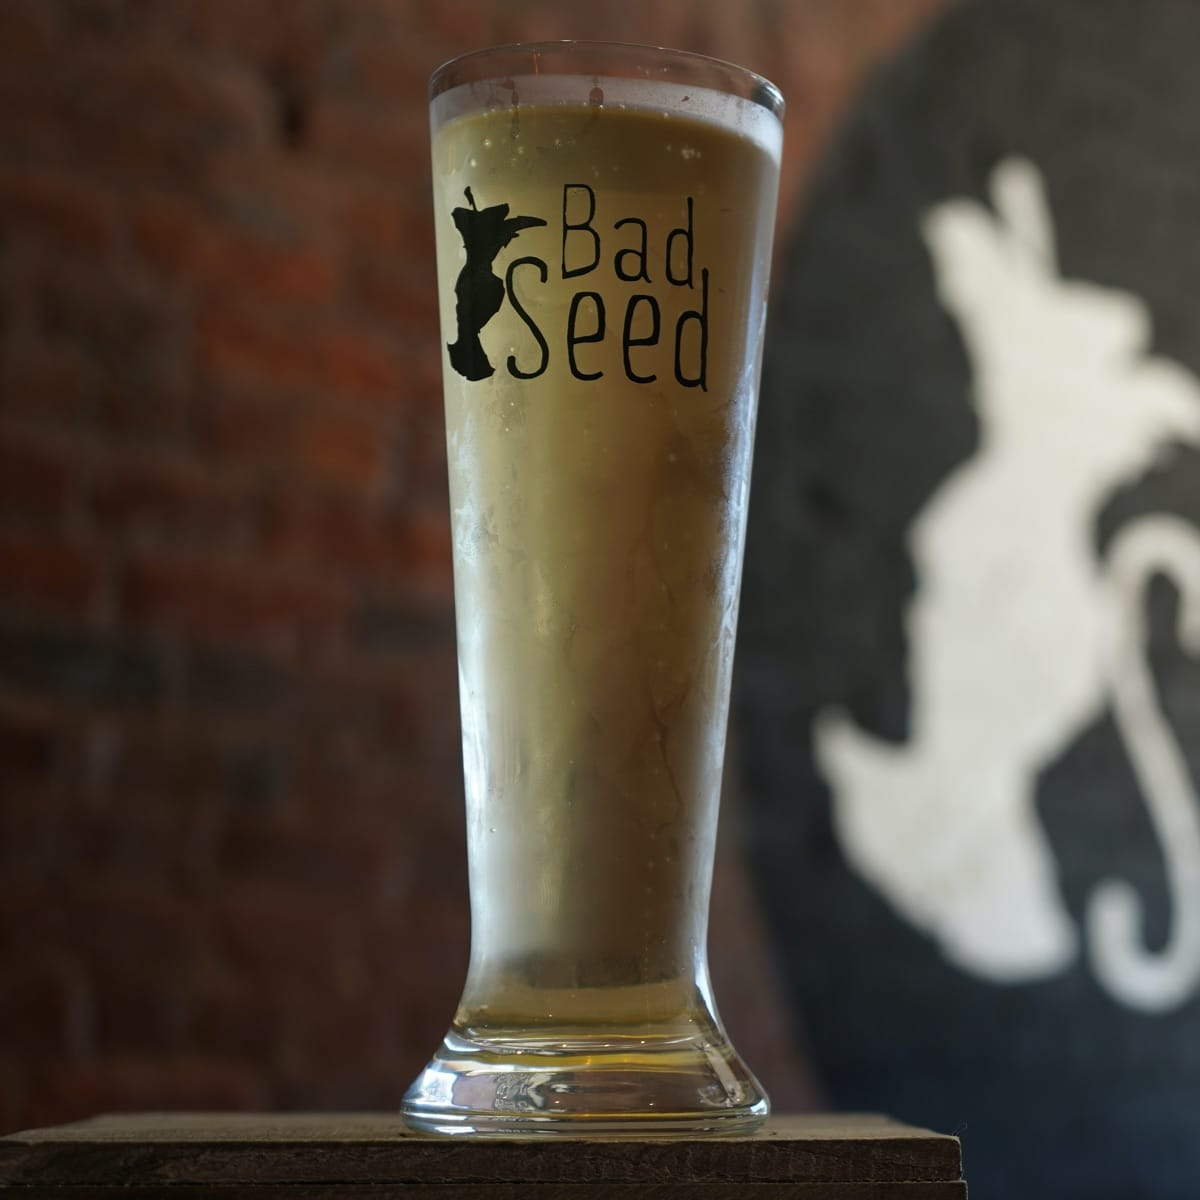 A tall glass full of Bad Seed's flagship hard cider sitting on a rustic wooden plank with a brick wall in the background.